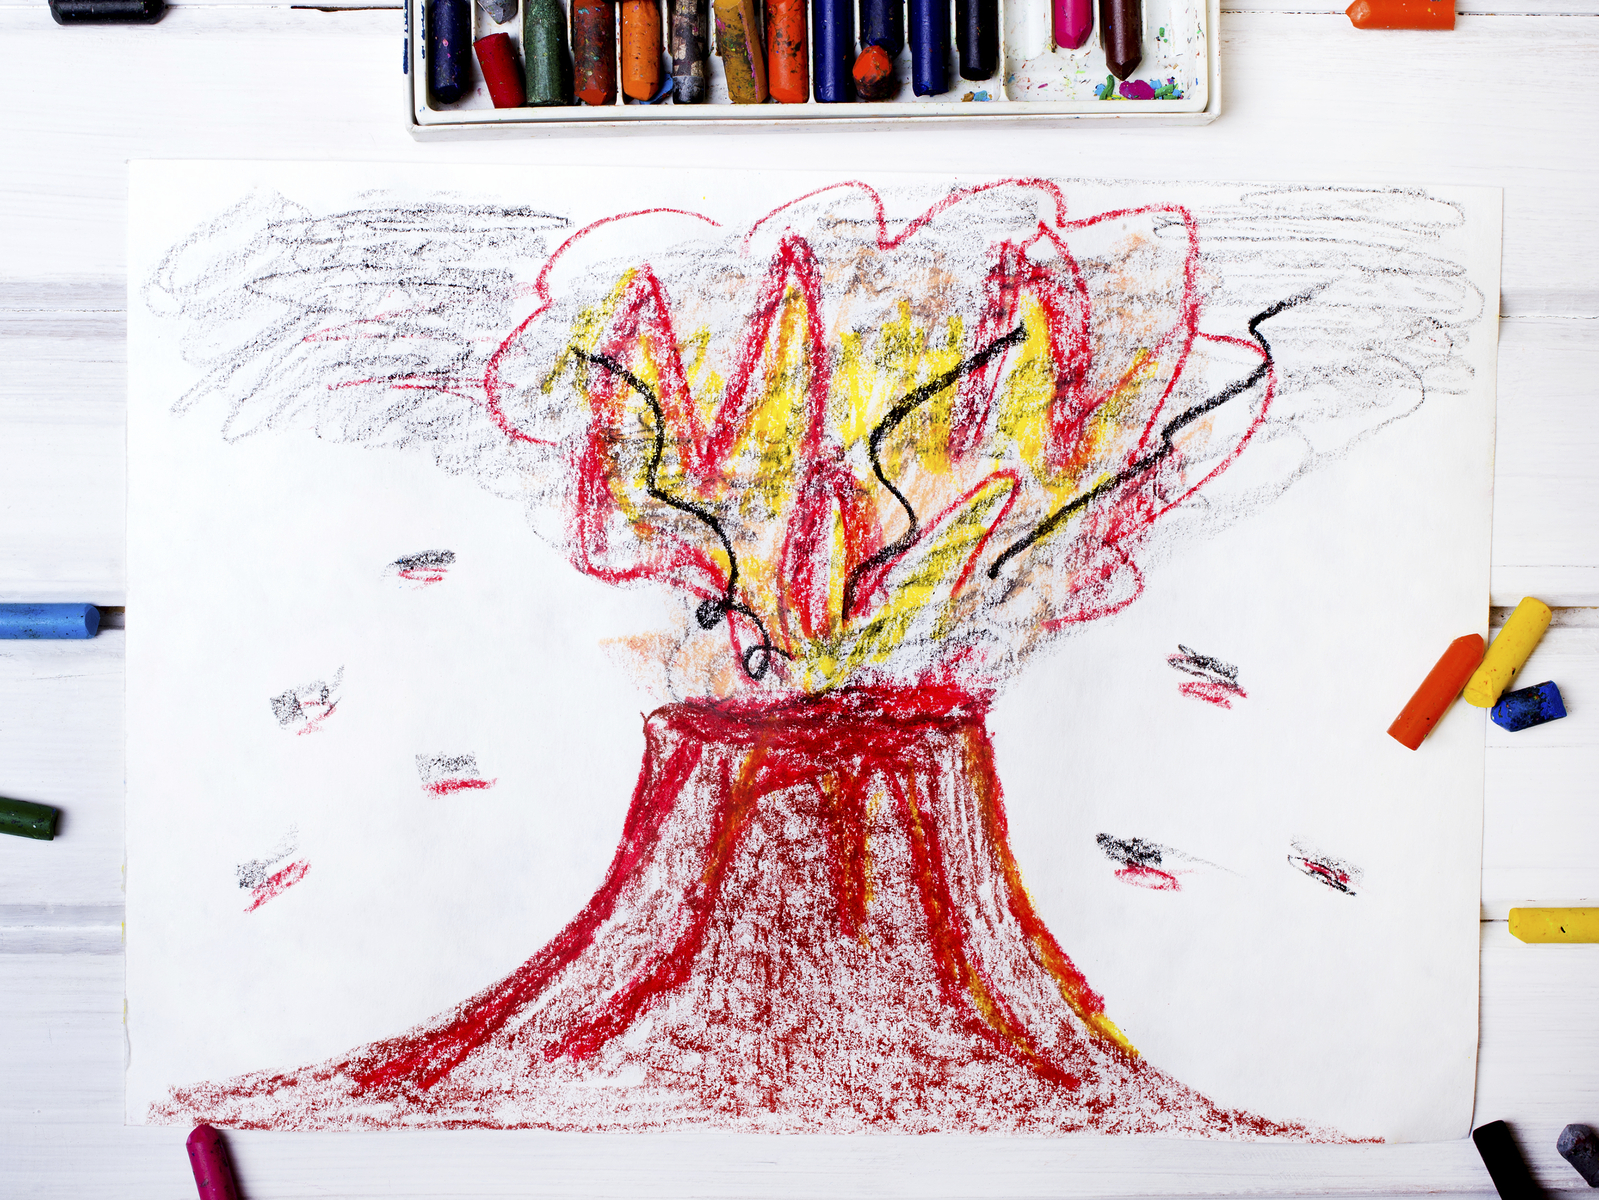 child's drawing of a volcano